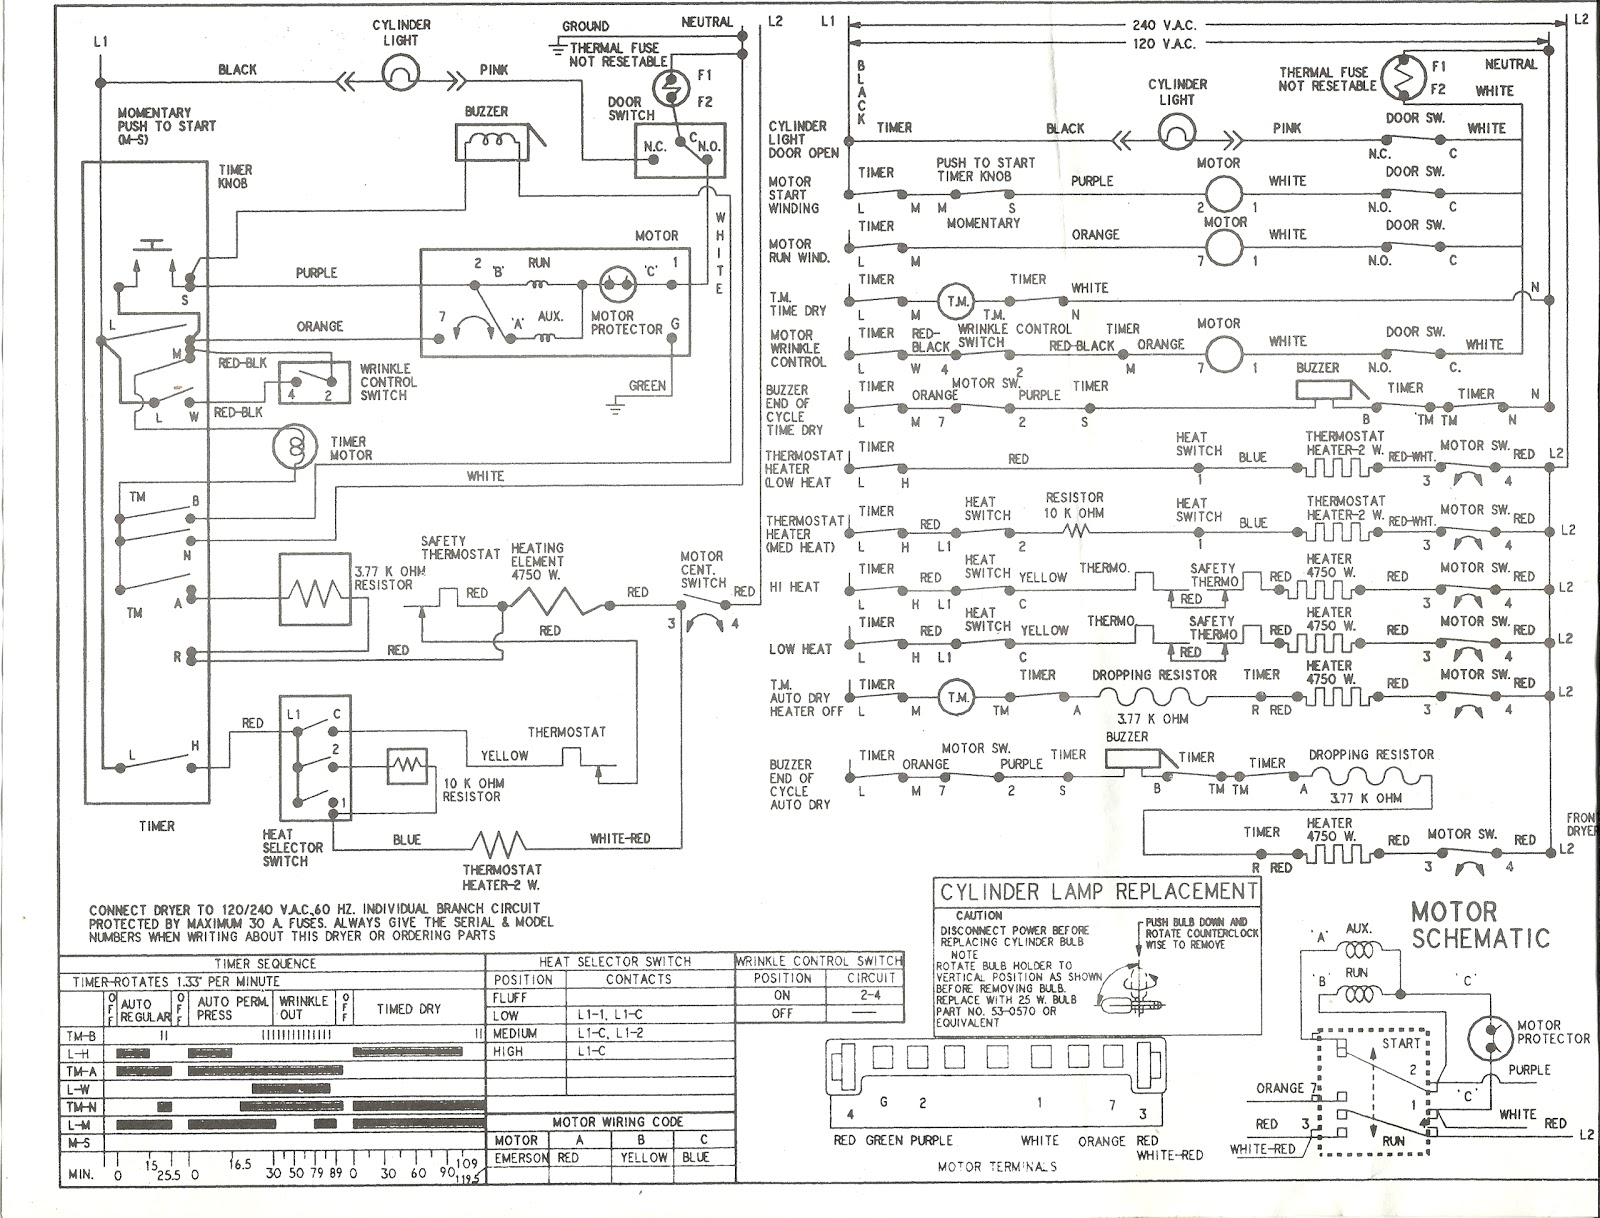 scan0001 wiring diagram dryer kenmore dryer heating element wiring diagram  at bayanpartner.co